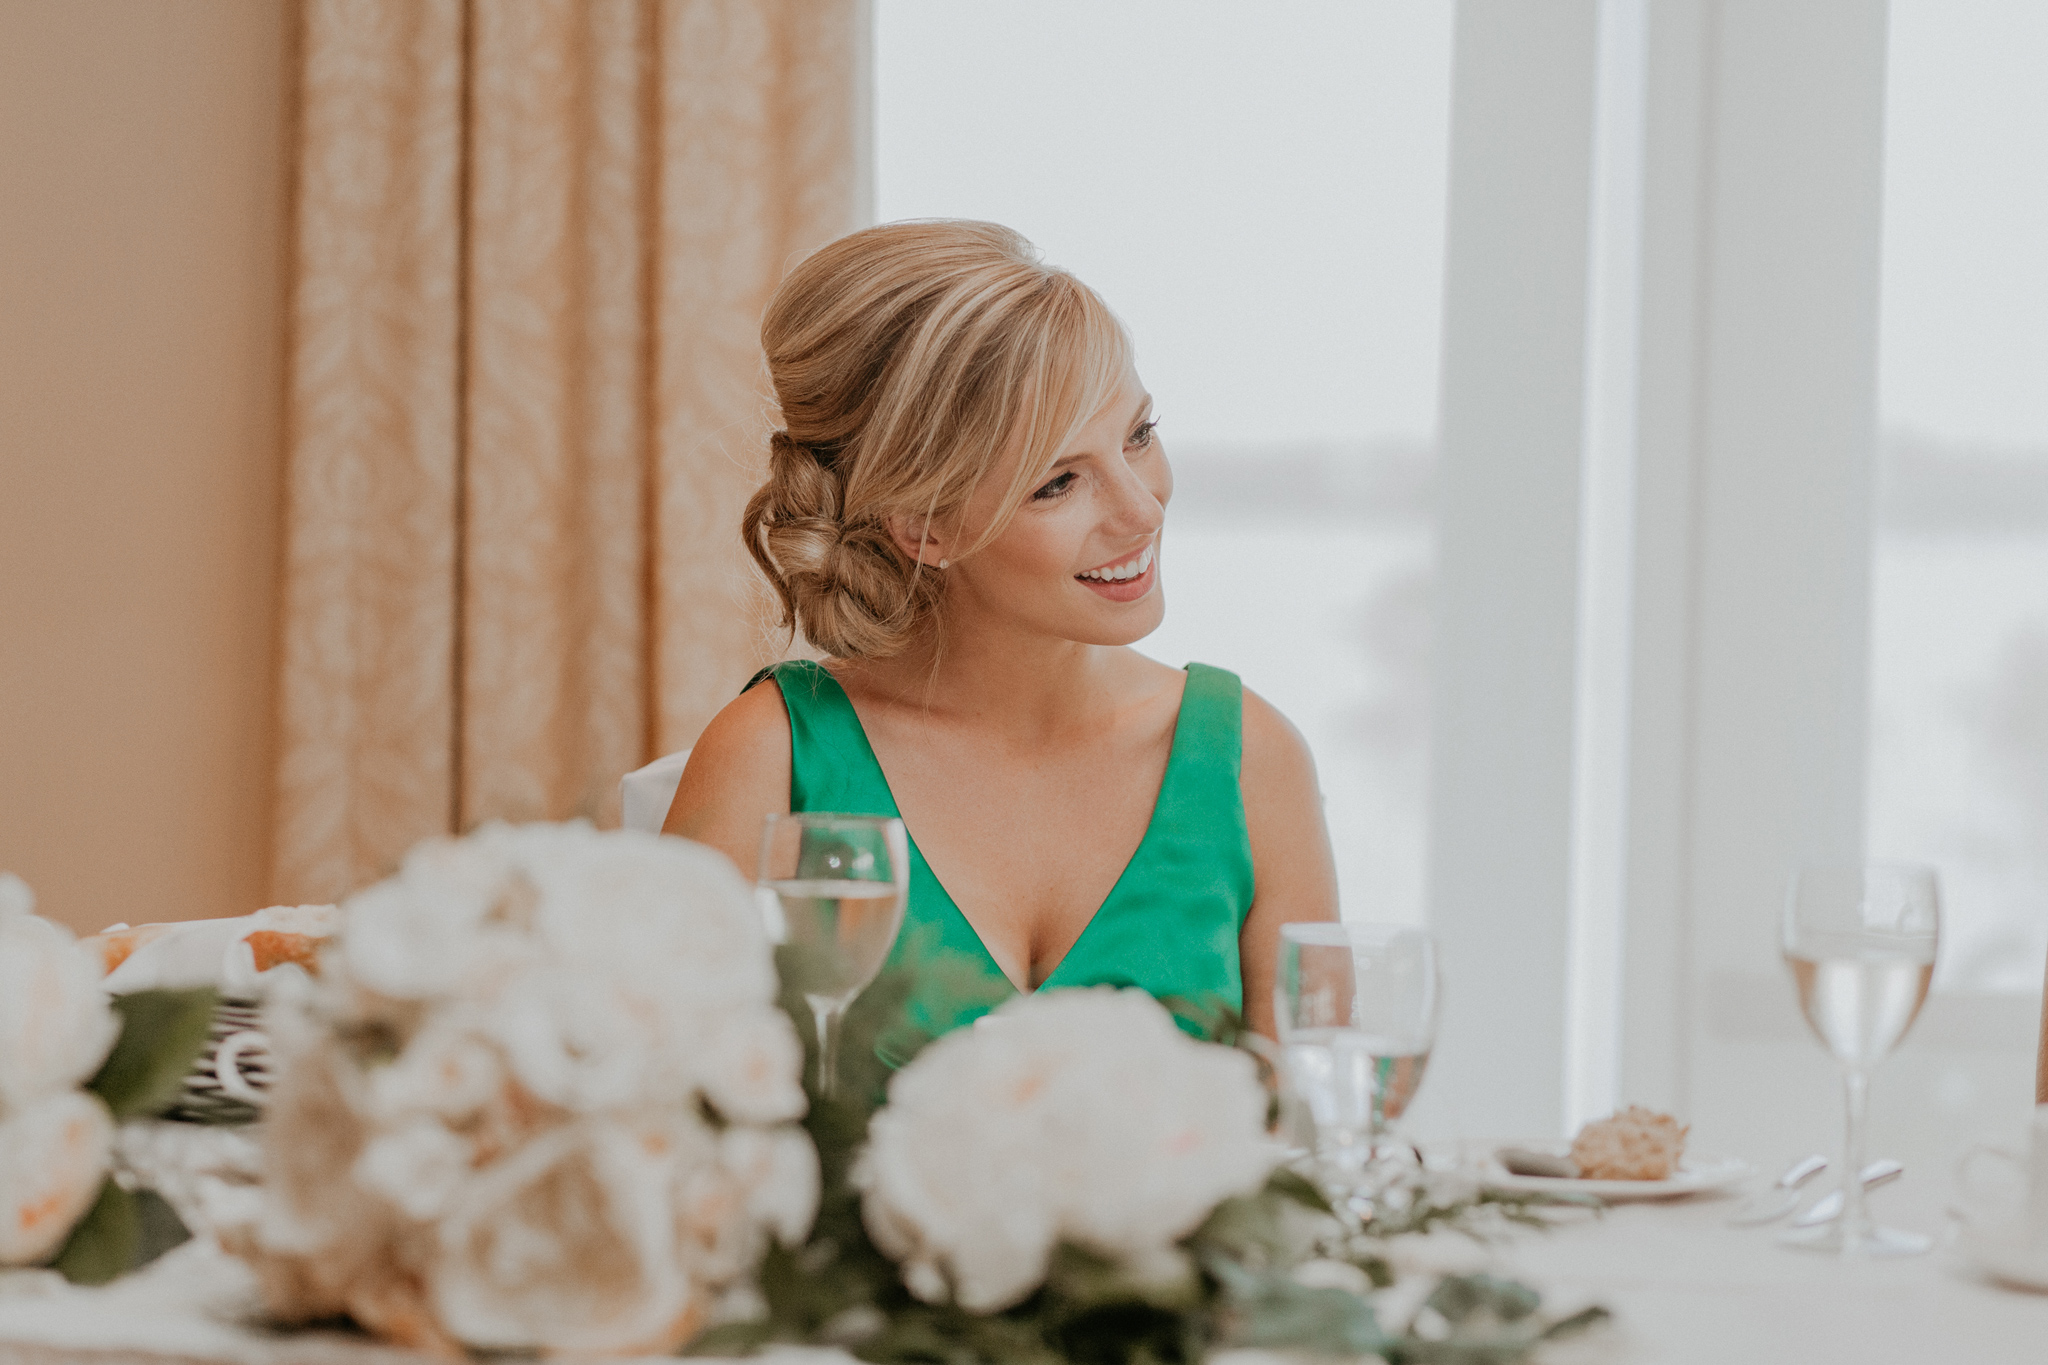 Maid of honor smiles at head table in wedding reception